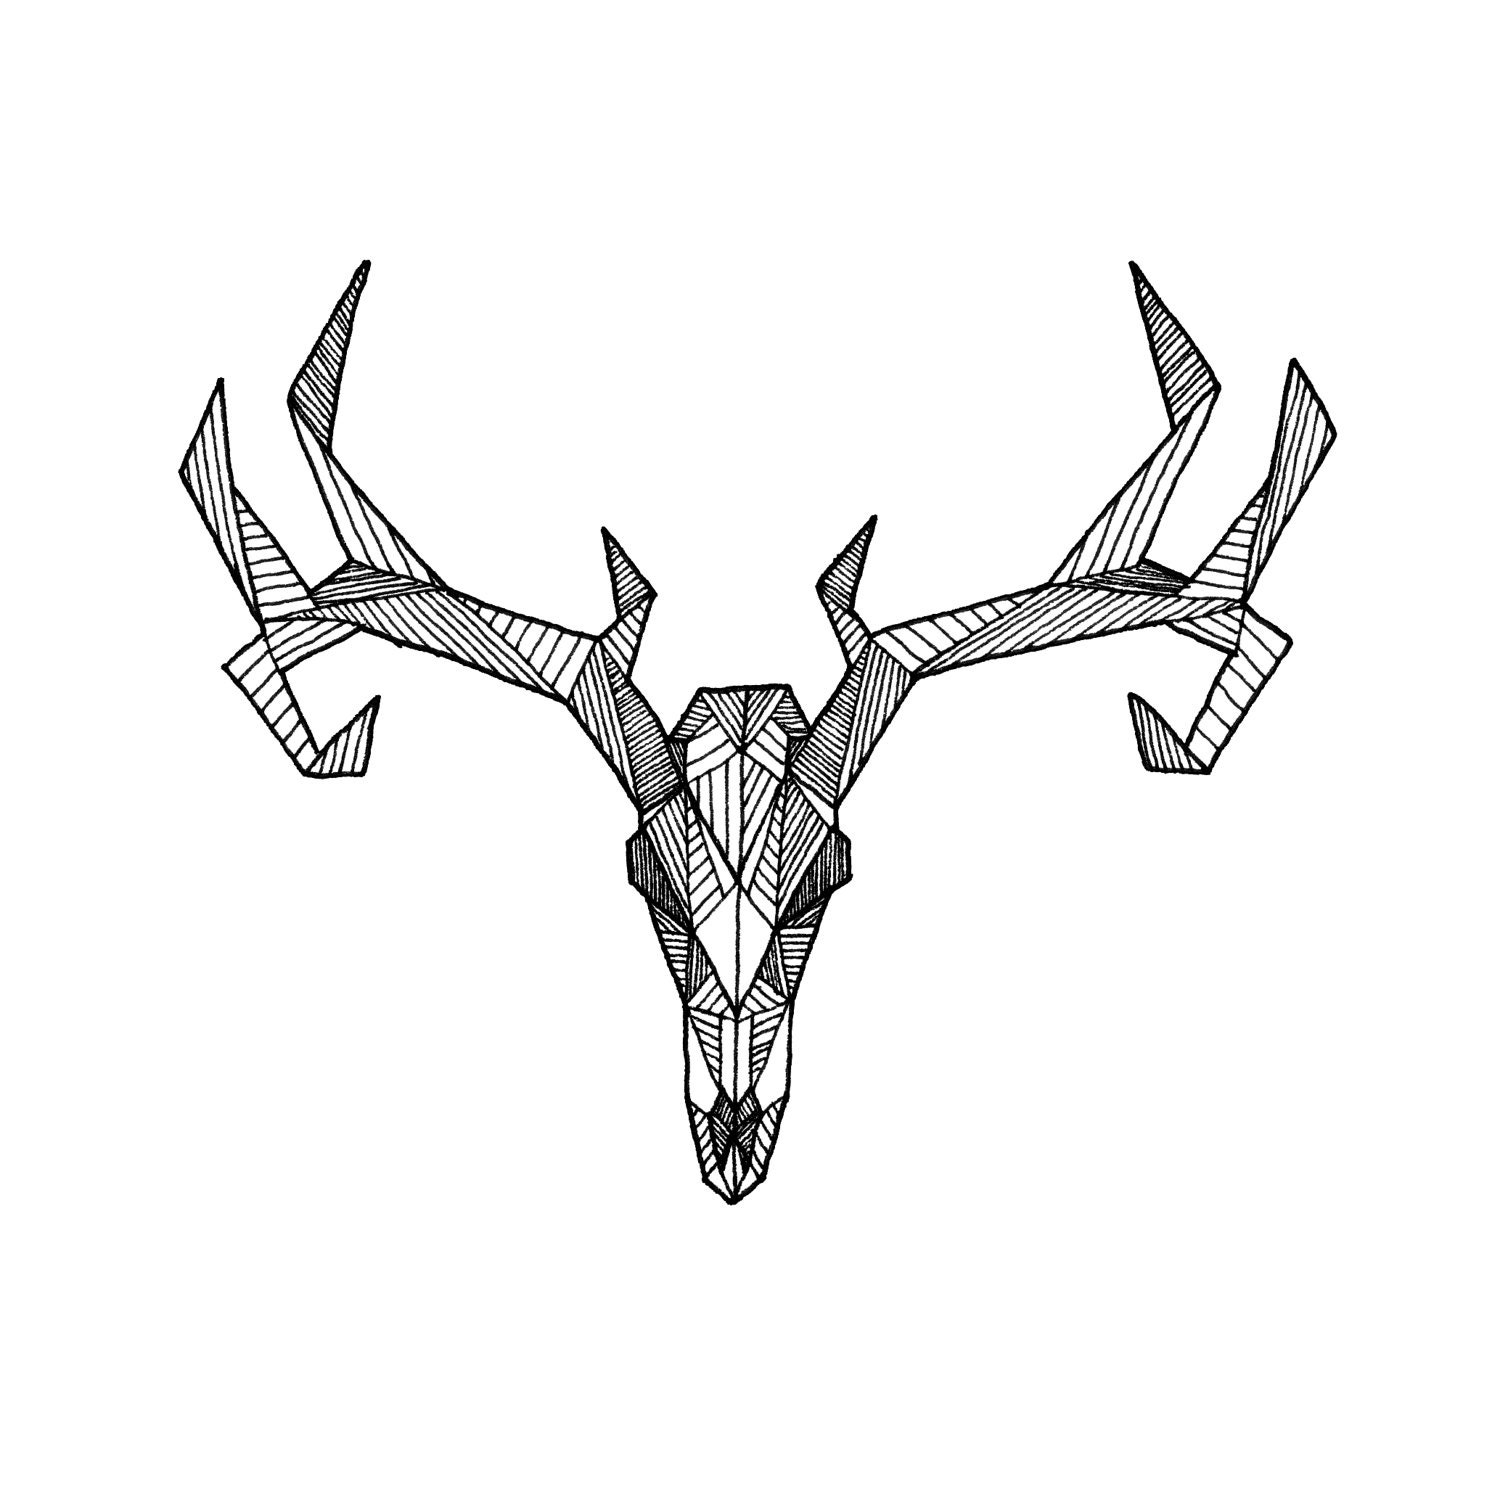 Elk skull drawing - photo#21